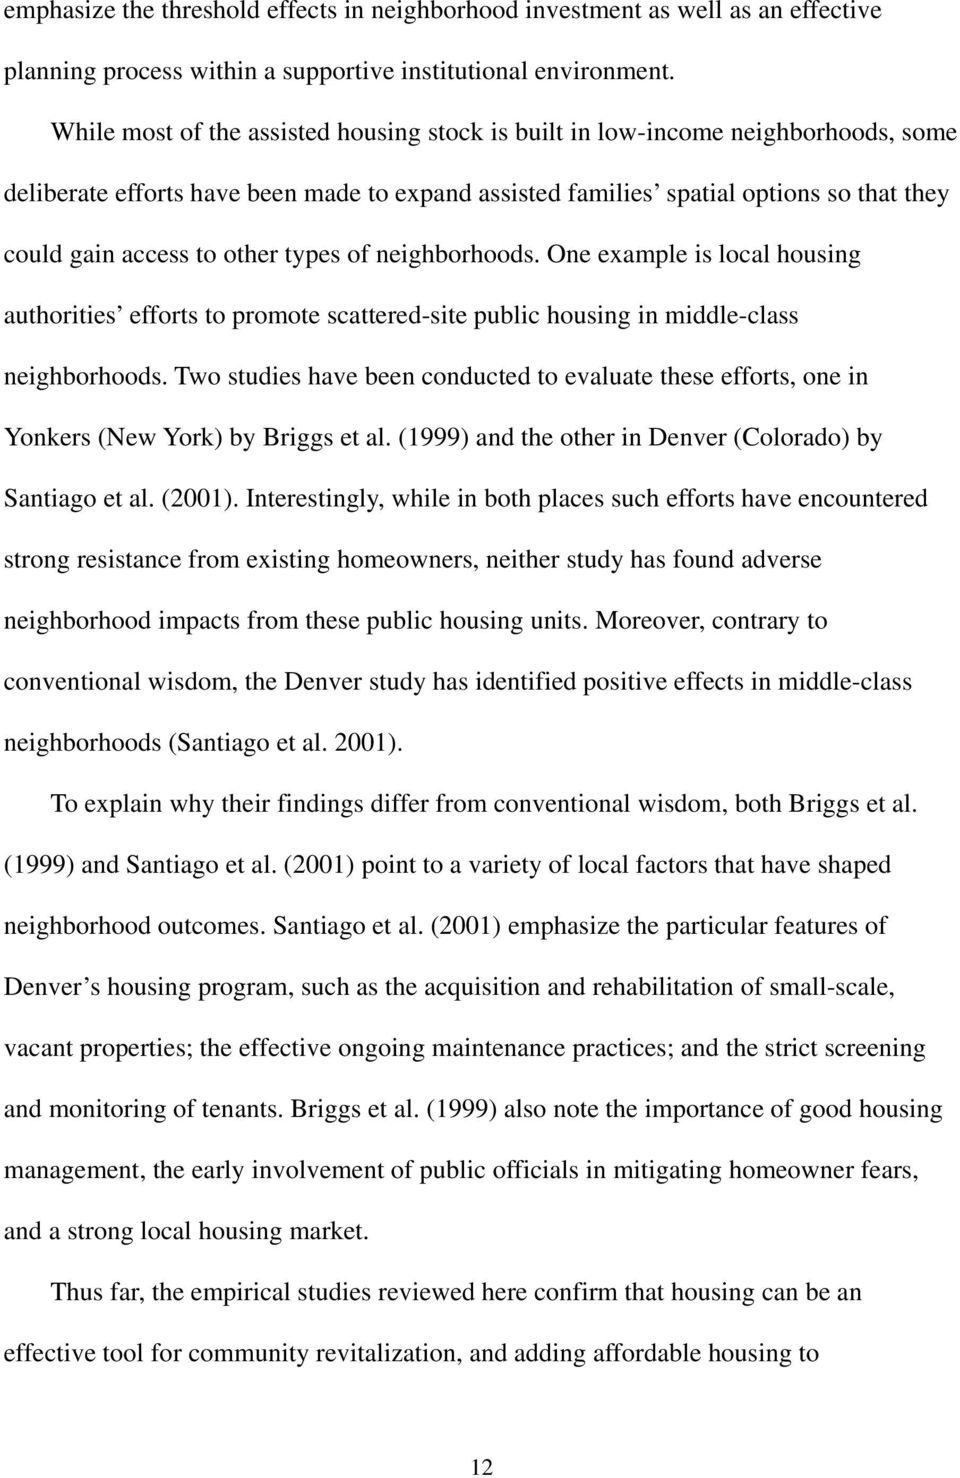 other types of neighborhoods. One example is local housing authorities efforts to promote scattered-site public housing in middle-class neighborhoods.